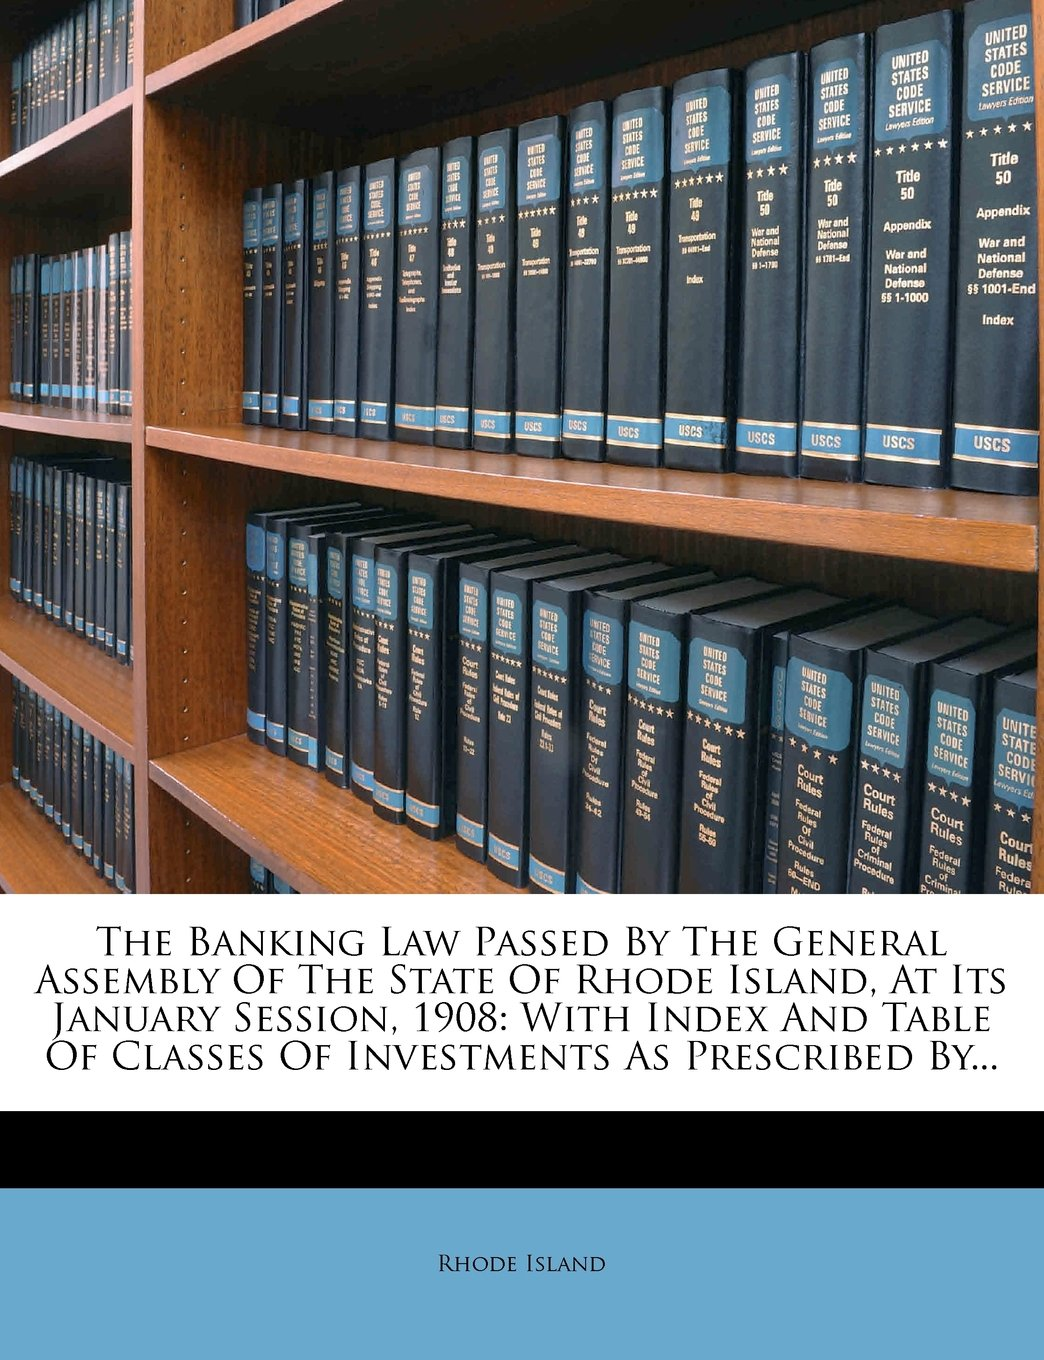 Download The Banking Law Passed By The General Assembly Of The State Of Rhode Island, At Its January Session, 1908: With Index And Table Of Classes Of Investments As Prescribed By... ebook